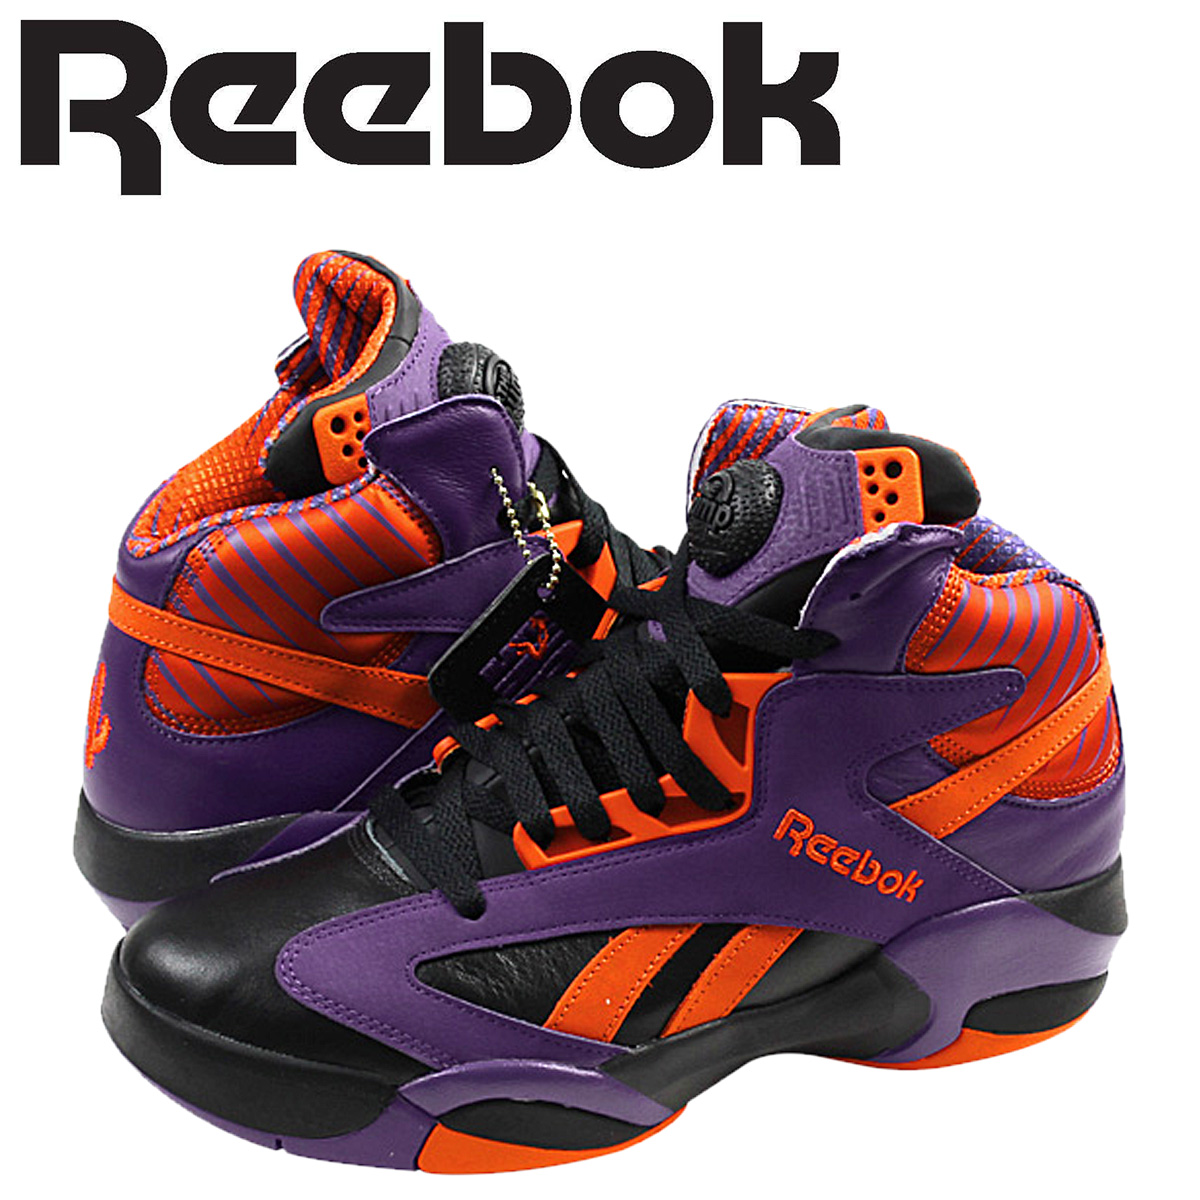 b97deec6675 Whats up Sports  Reebok Reebok Shaq s sneakers SHAQ ATTAQ PHOENIX ...